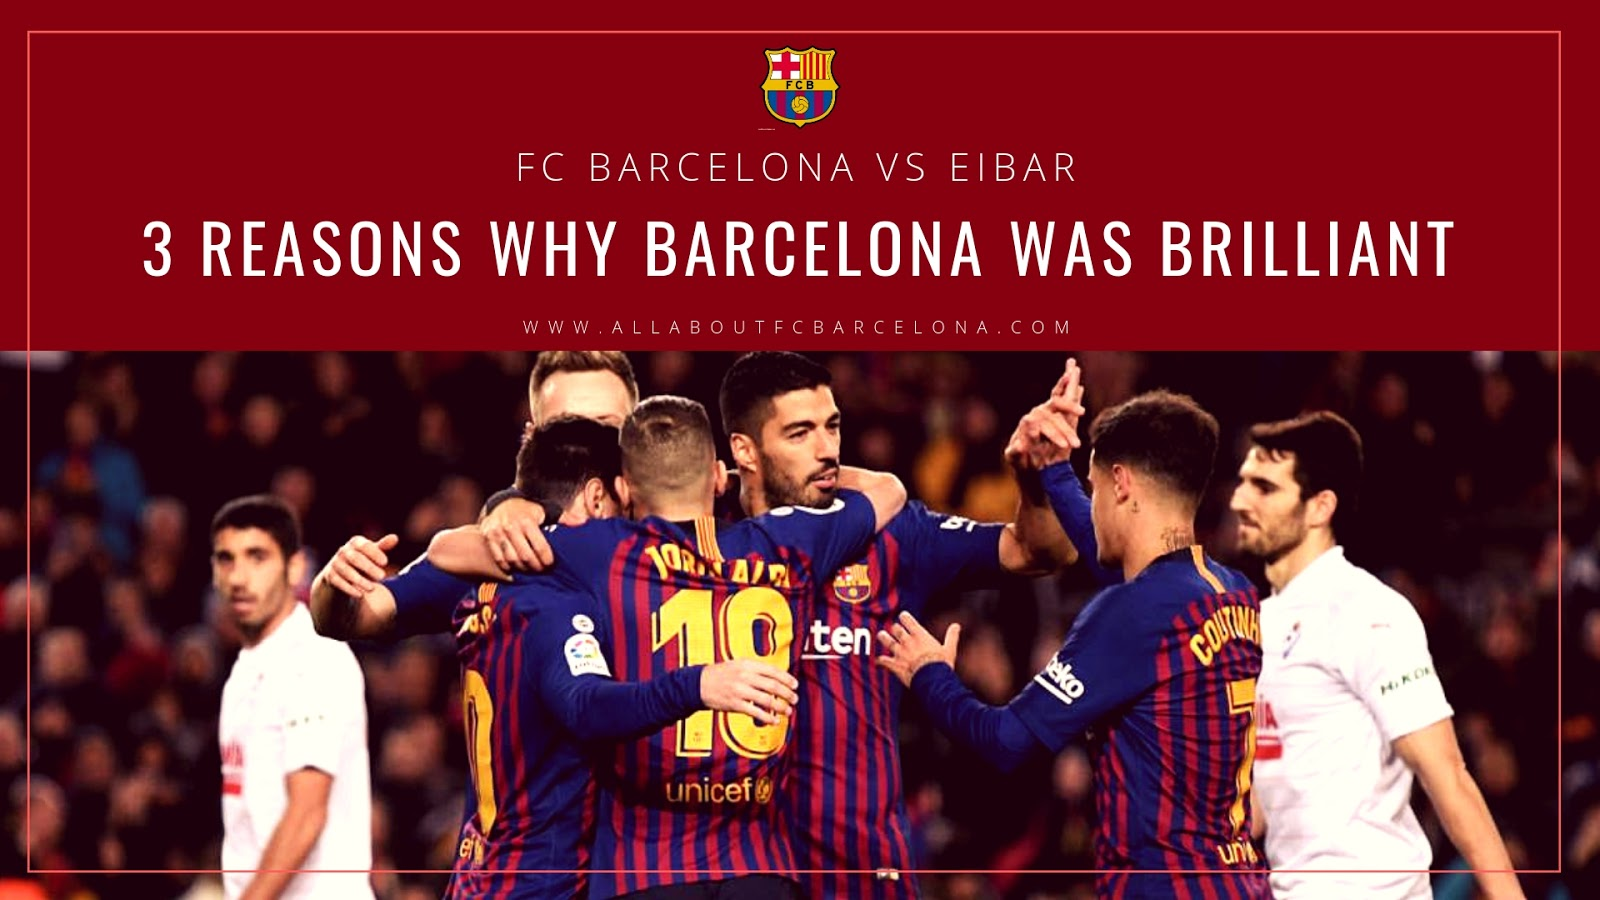 3 Reasons Why Barcelona's Victory over Eibar was Absolutely Brilliant #Barca #FCBarcelona